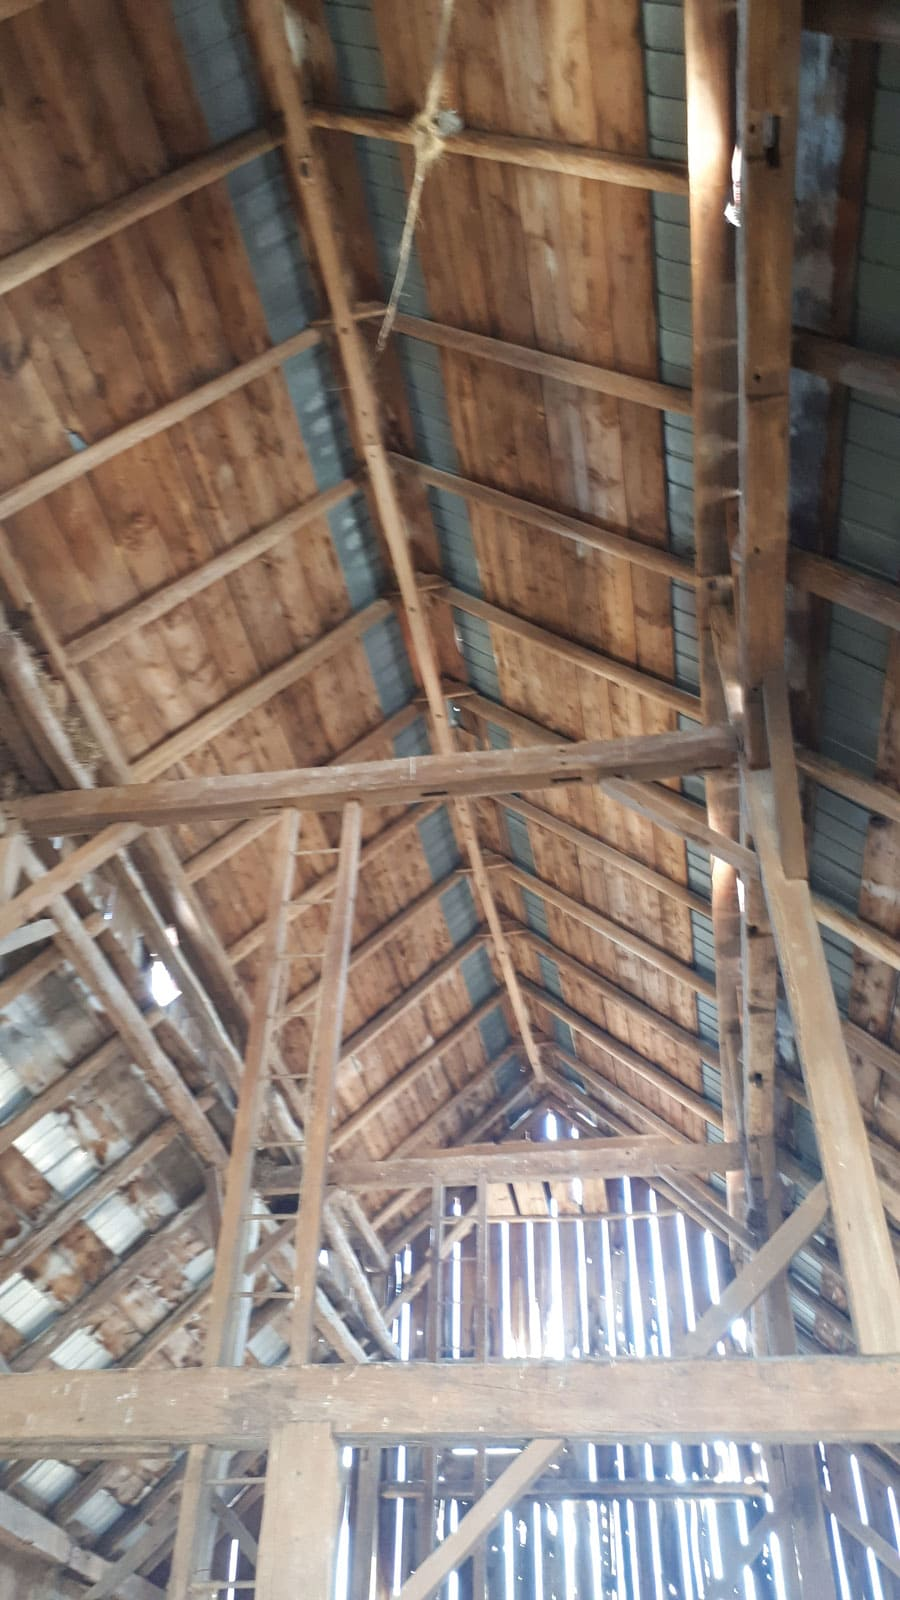 Interior of the Bradley Craig barn showing mortise and tenon joinery with wooden fasteners. April 2021